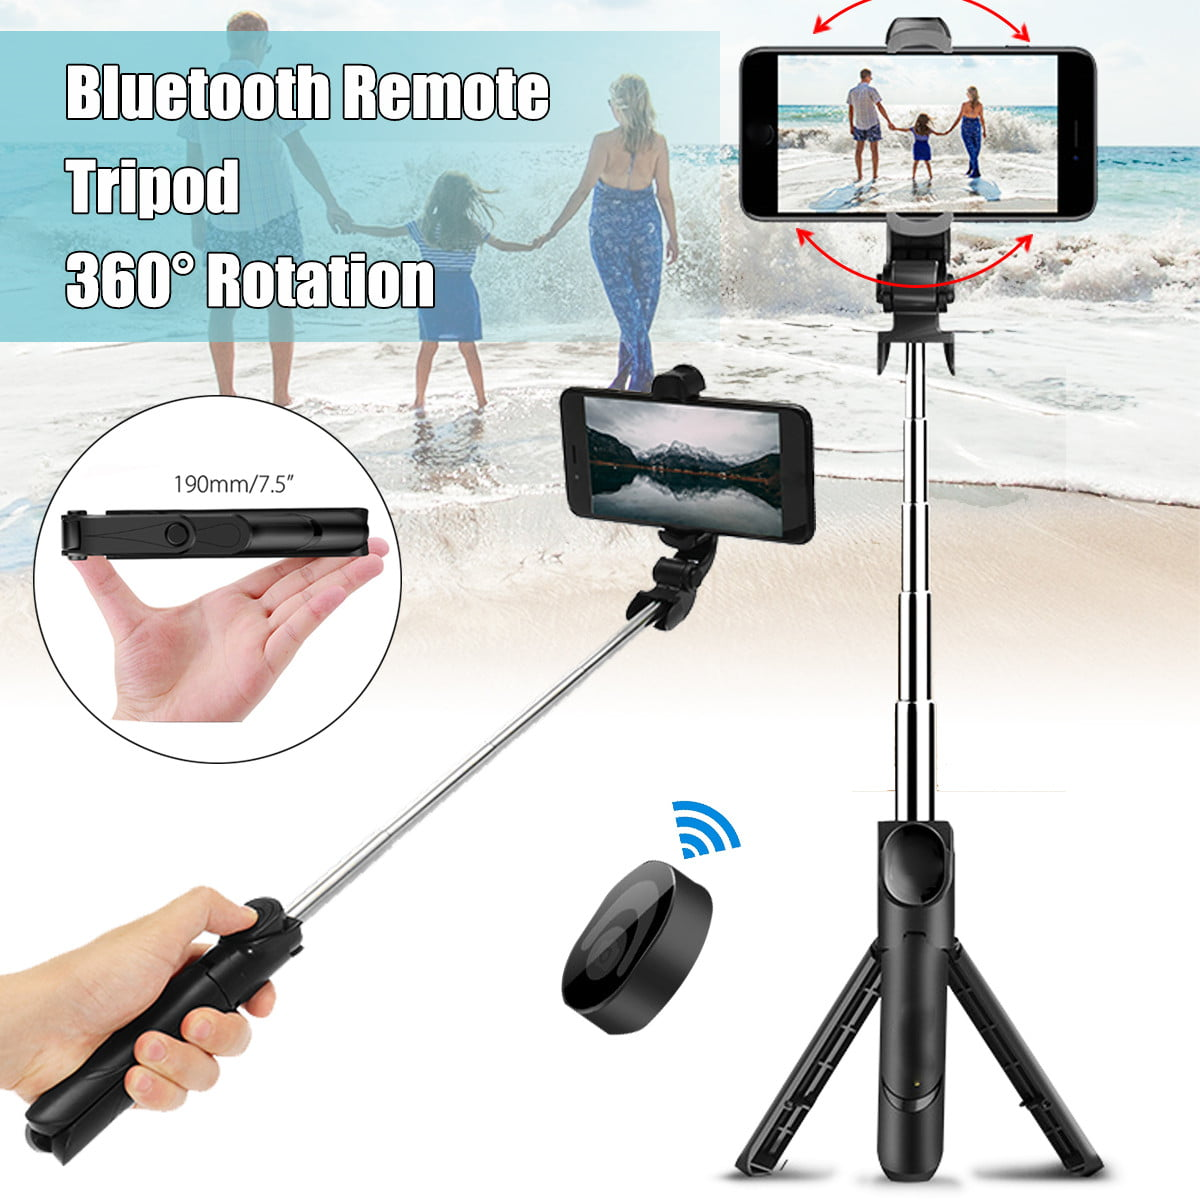 3 in 1 Bluetooth Remote Shutter Portable Handle Selfie Stick Mini Table Tripod for iOS Android Color : Black, Size : One Size Bishelle Phone Camera Tripod Phone Tripod